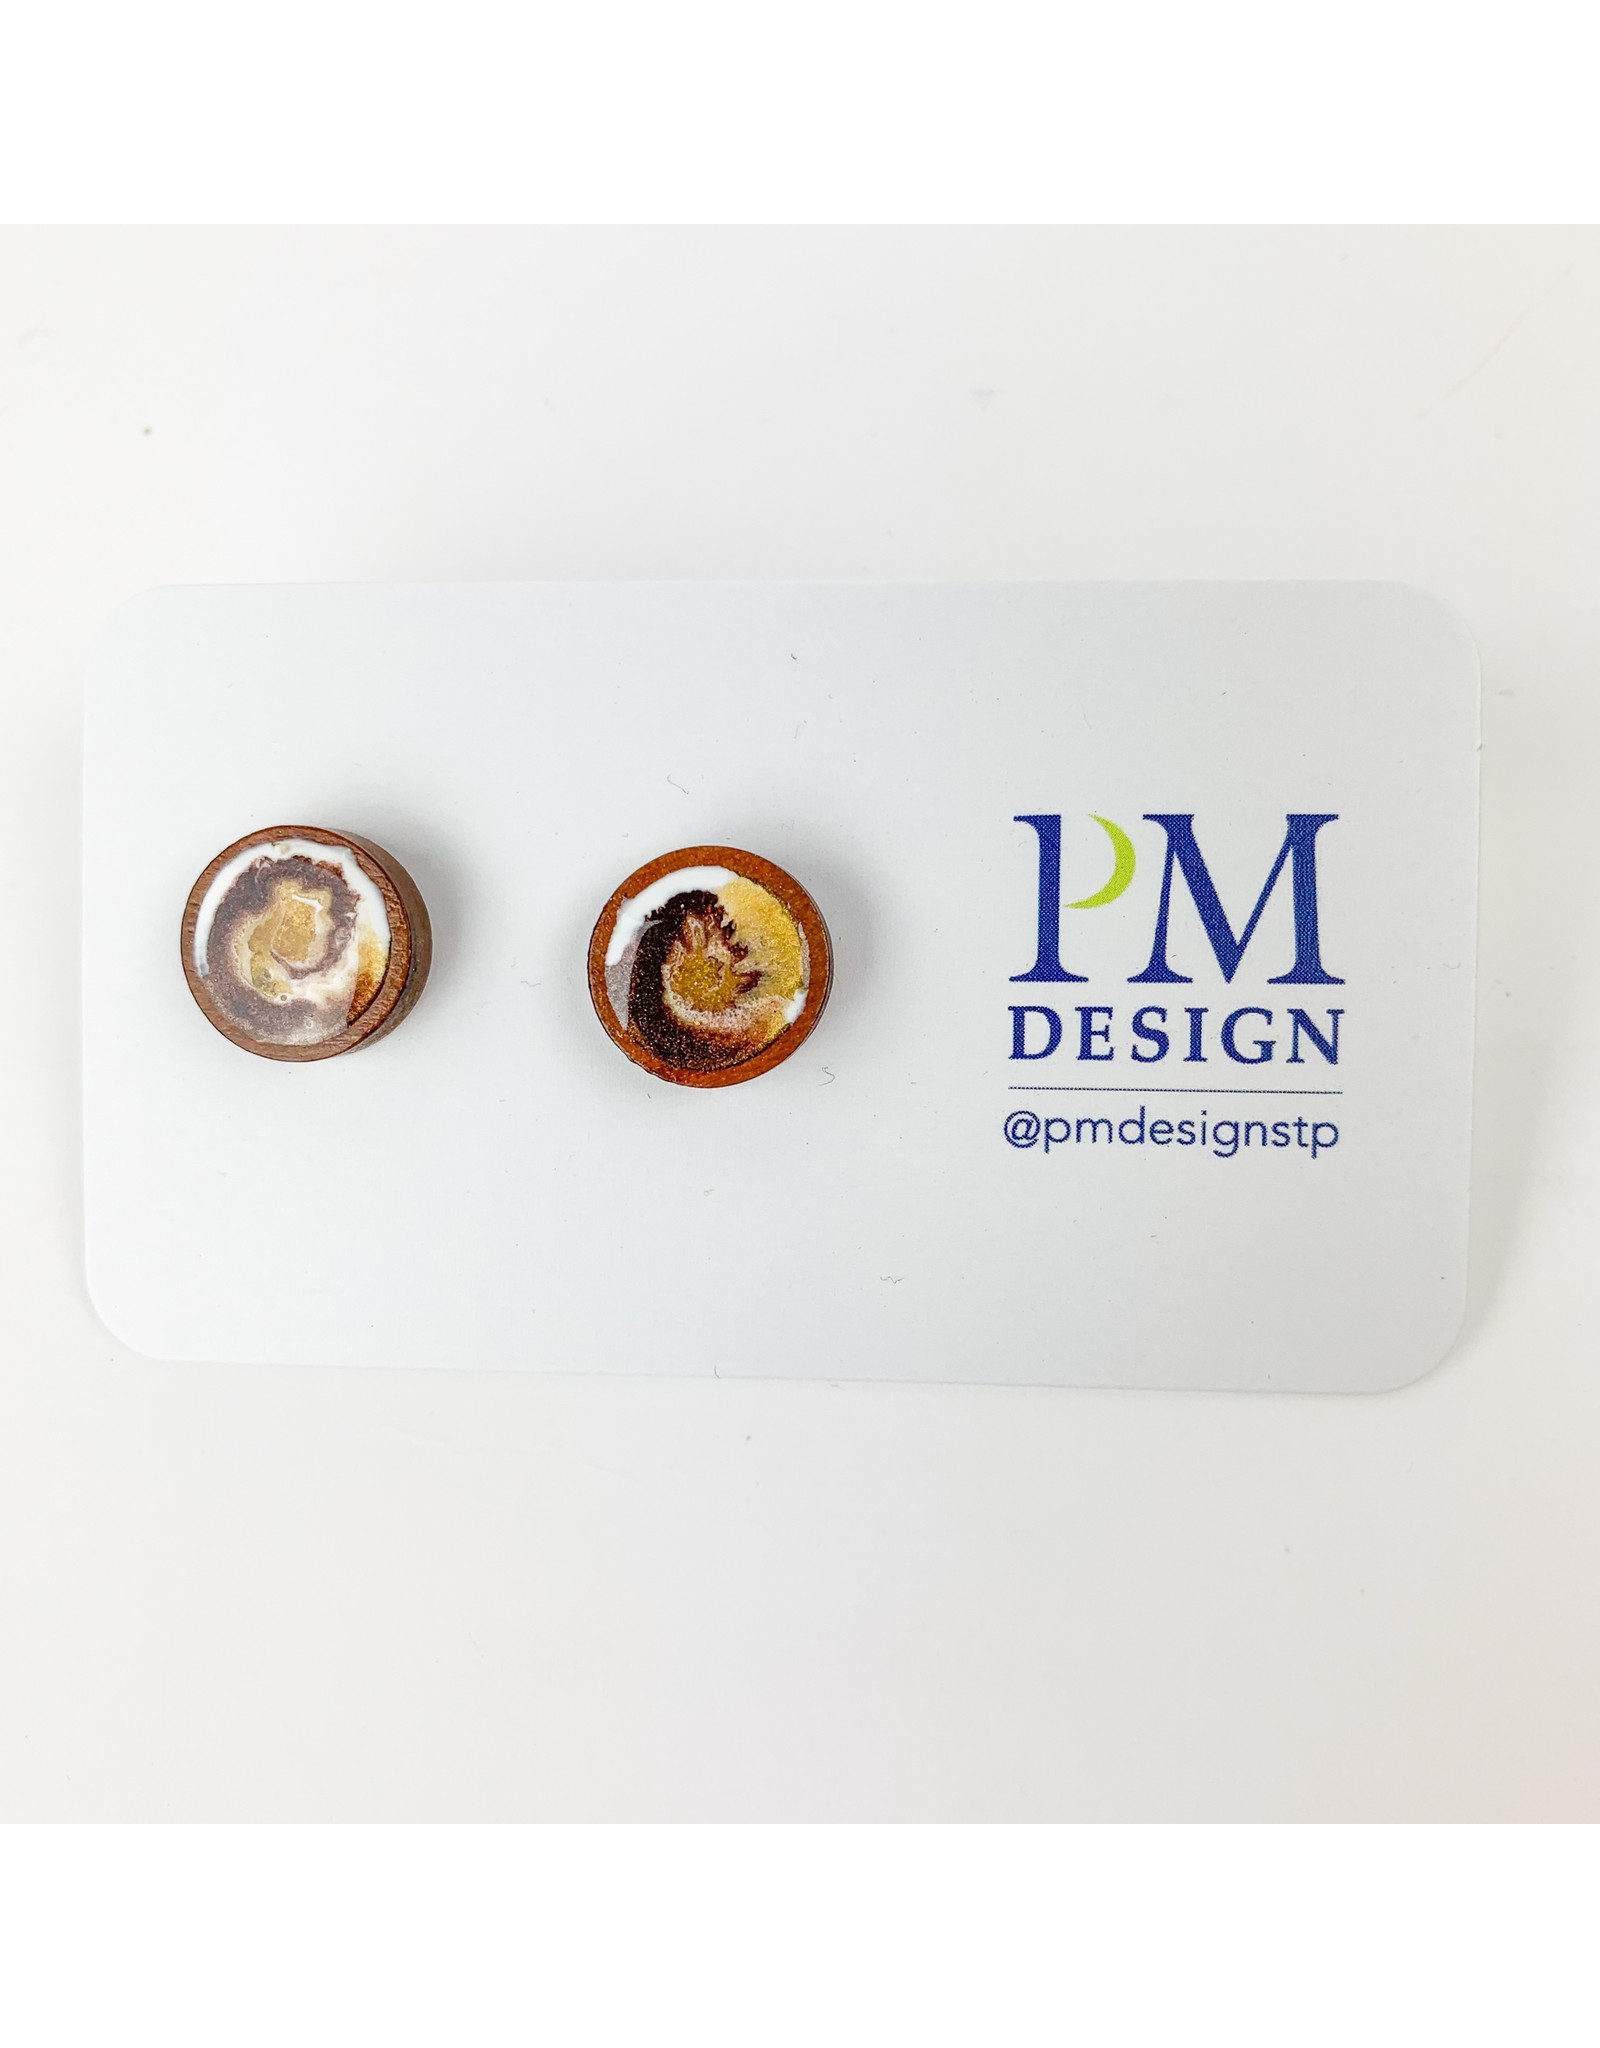 PM Design - Consignment Stud - Brown and Gold Consignment